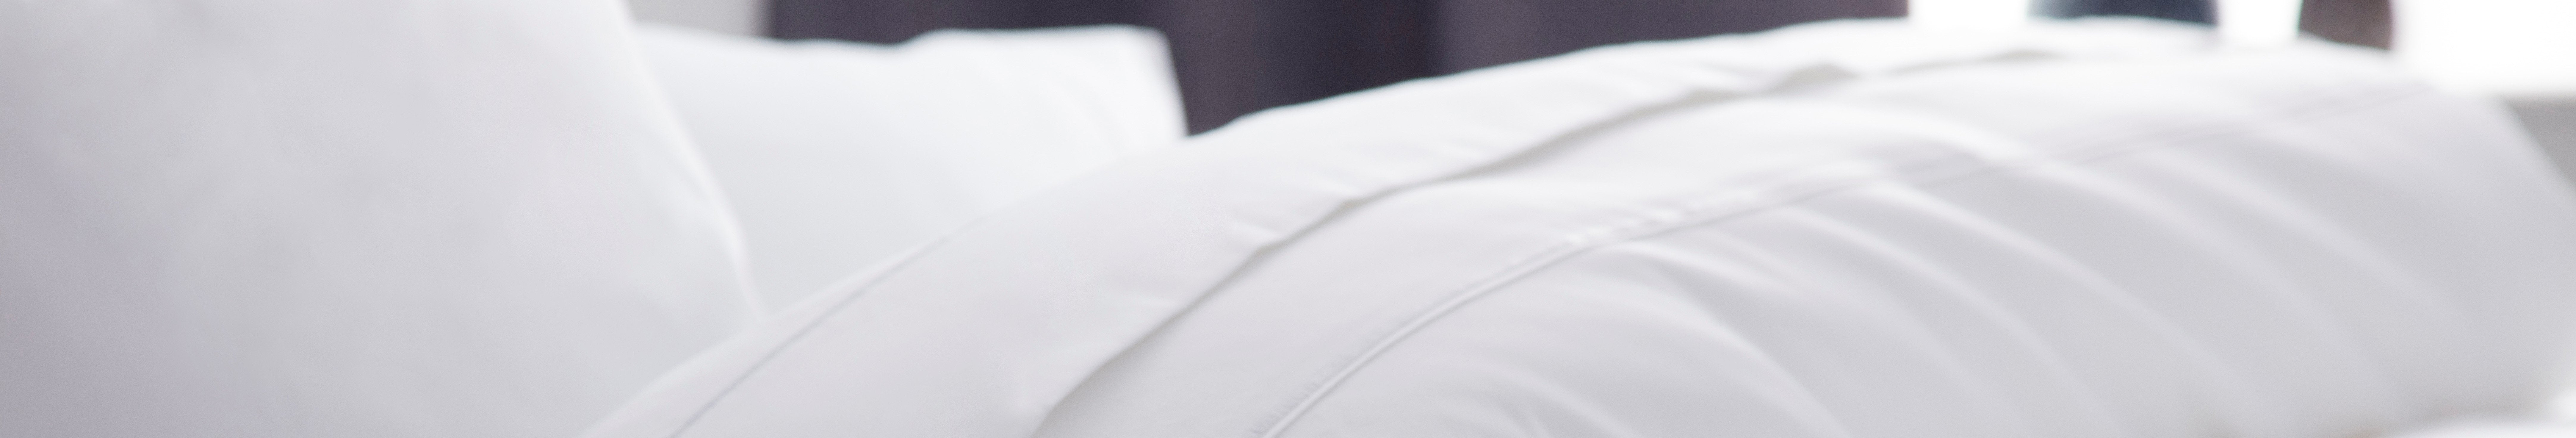 Ultimate High Thread Count Bedlinen - 1000 & 1200TC